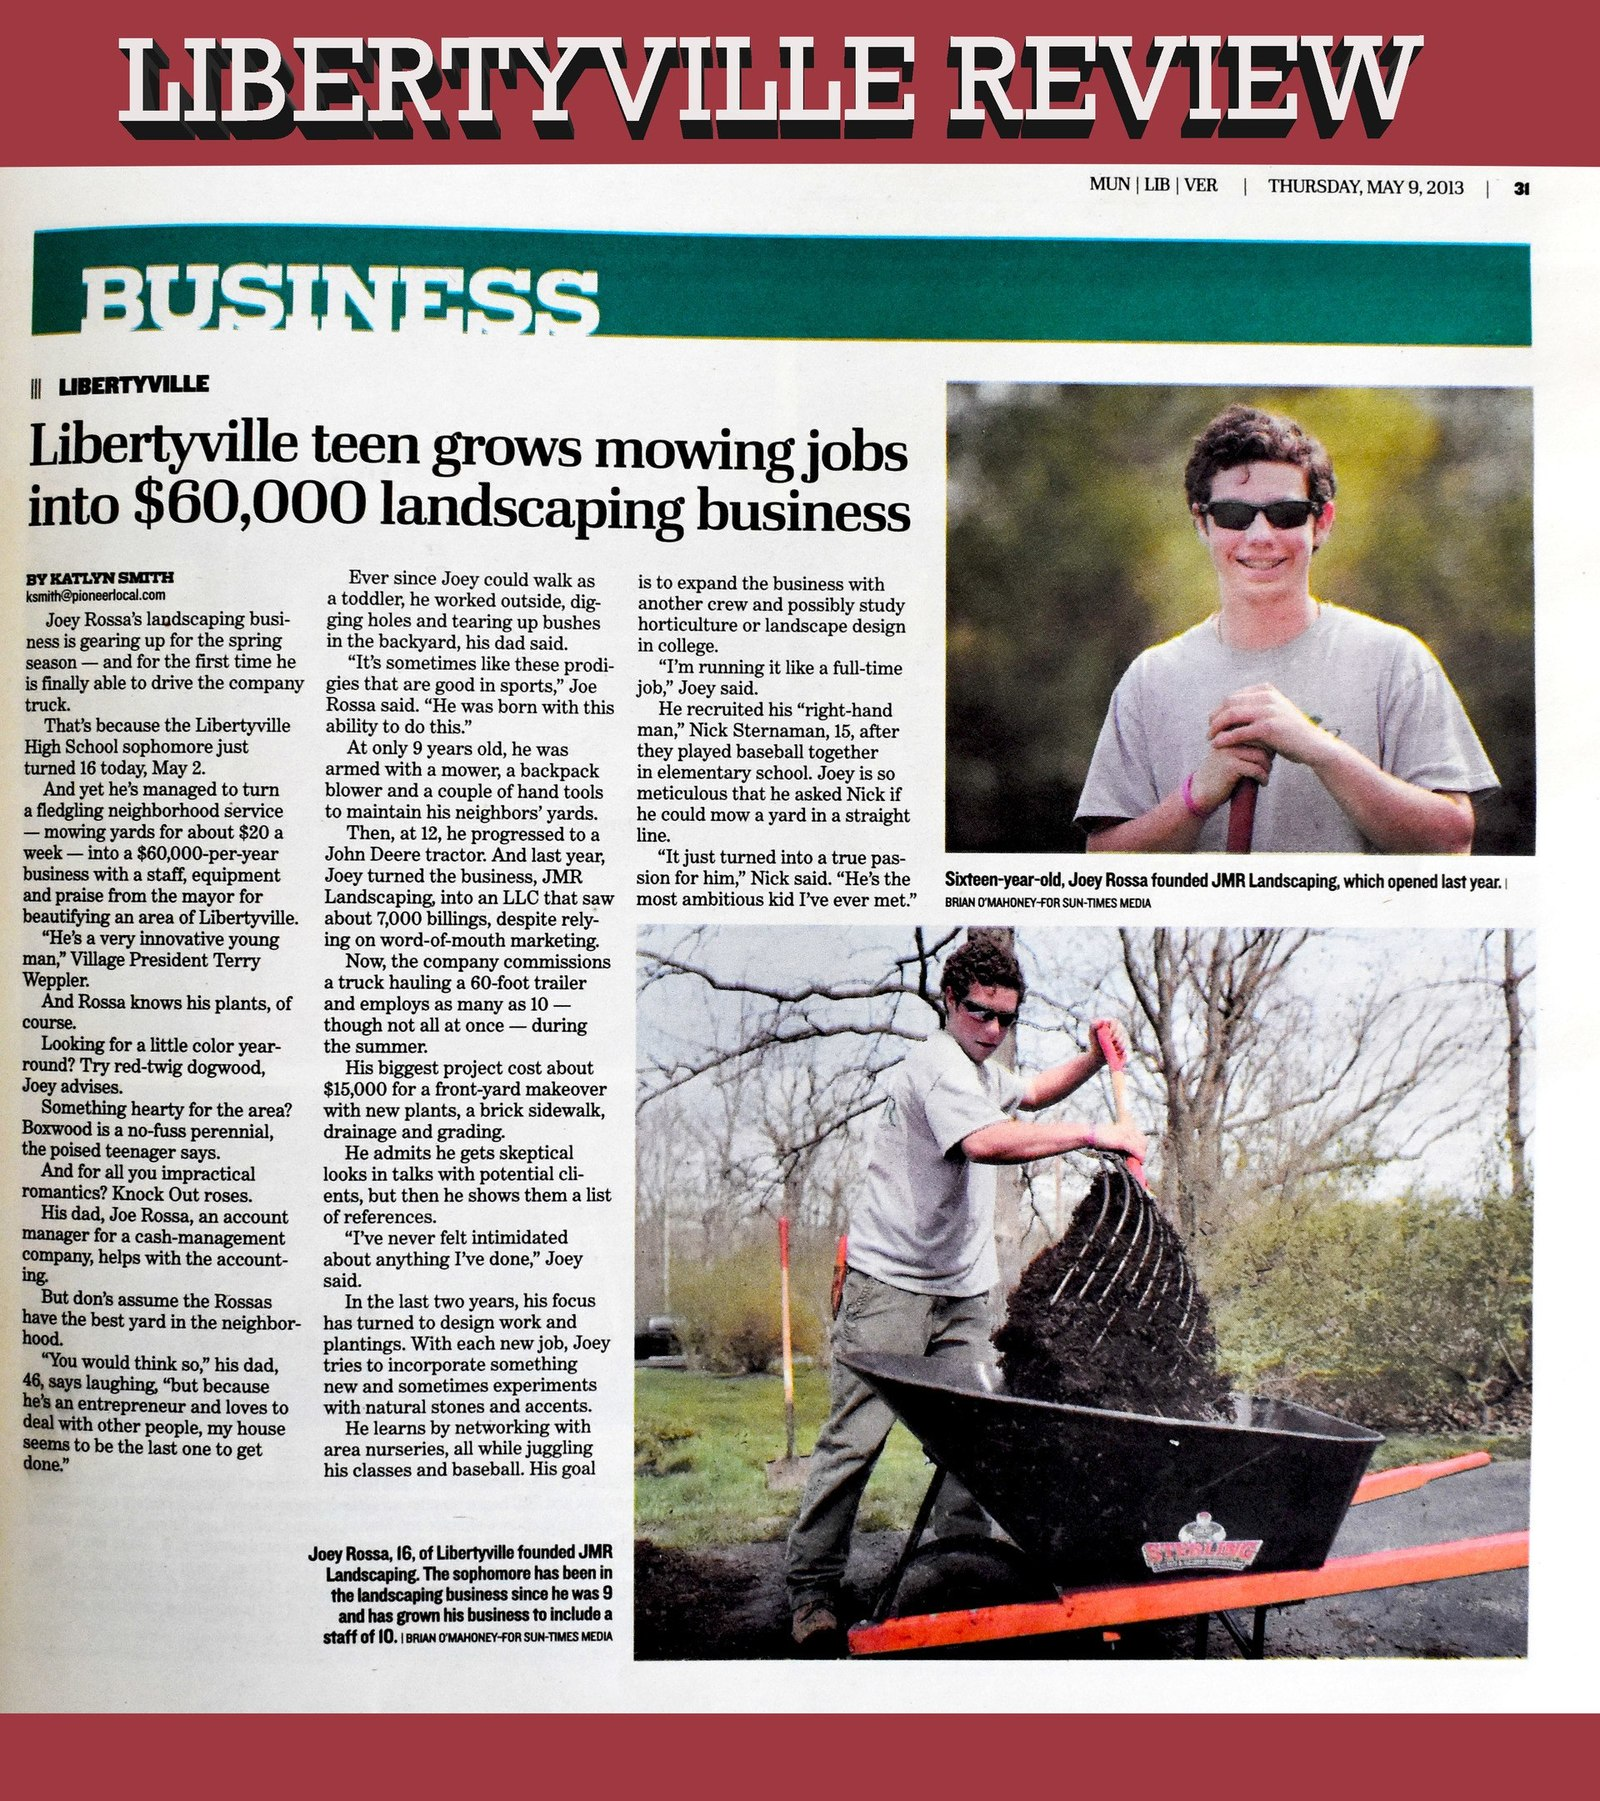 Teenage Rossa Propels JMR Landscaping to New Heights